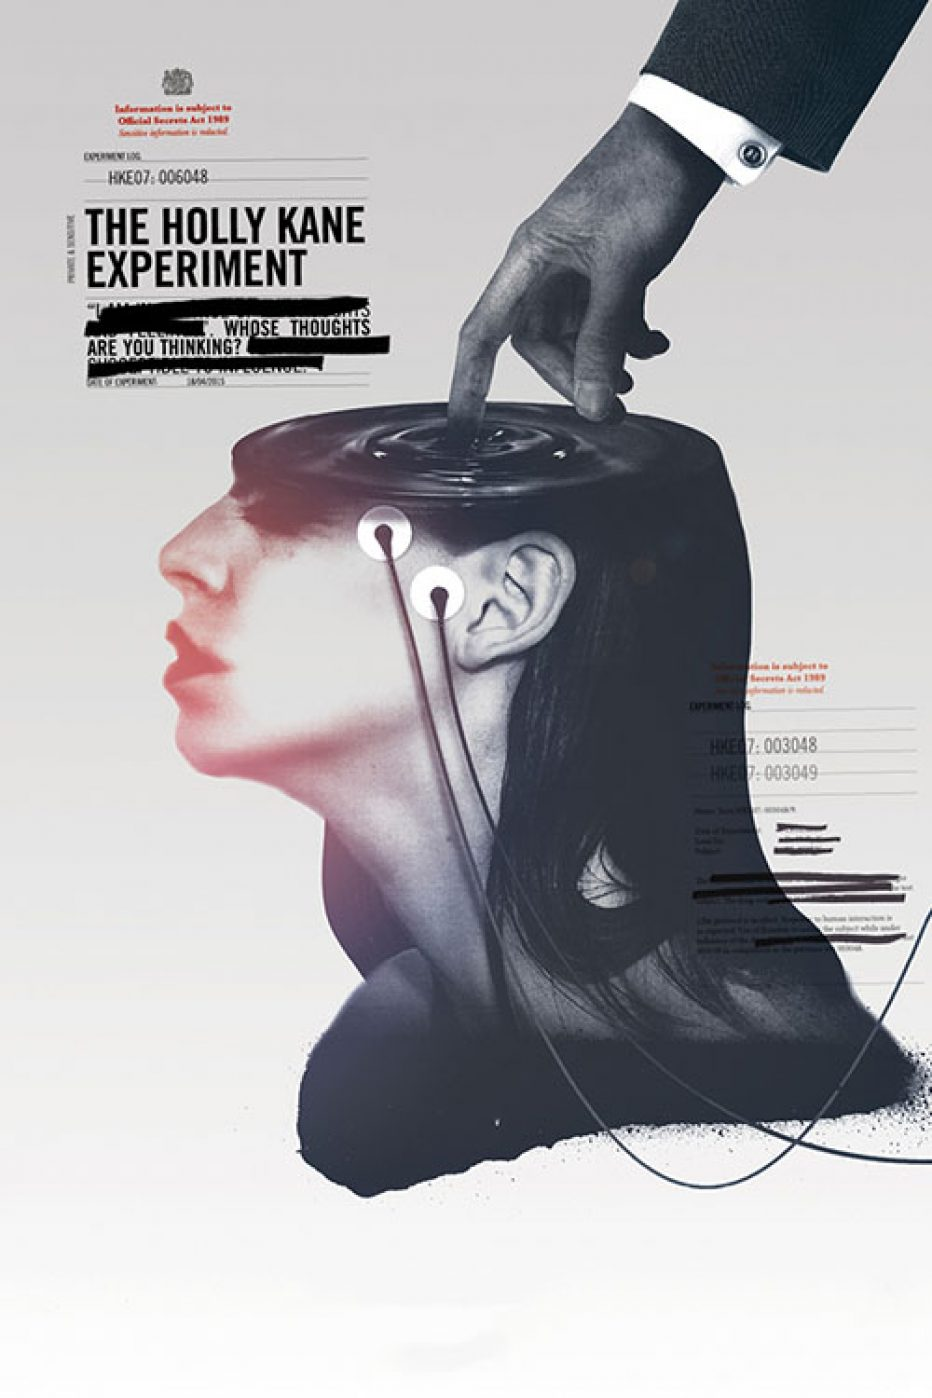 The Holly Kane Experiment UK Premiere on digital 12 Feb 2018